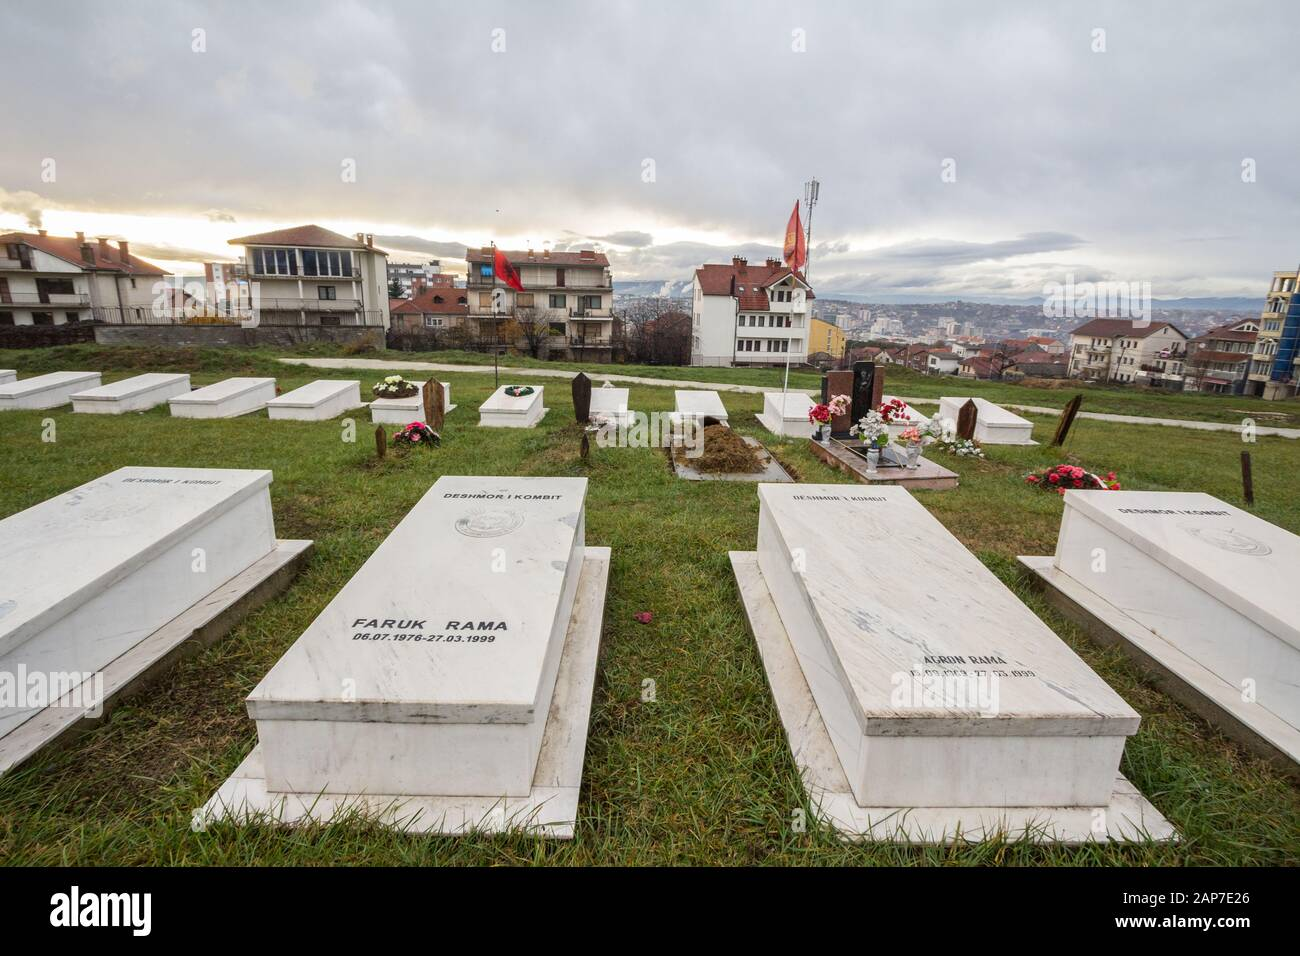 PRISTINA, KOSOVO - NOVEMBER 12, 2016: Graves of Kosovo Liberation Army (KLA, also known as UCK) fighters killed in the Kosovo conflict in 1999 in the Stock Photo